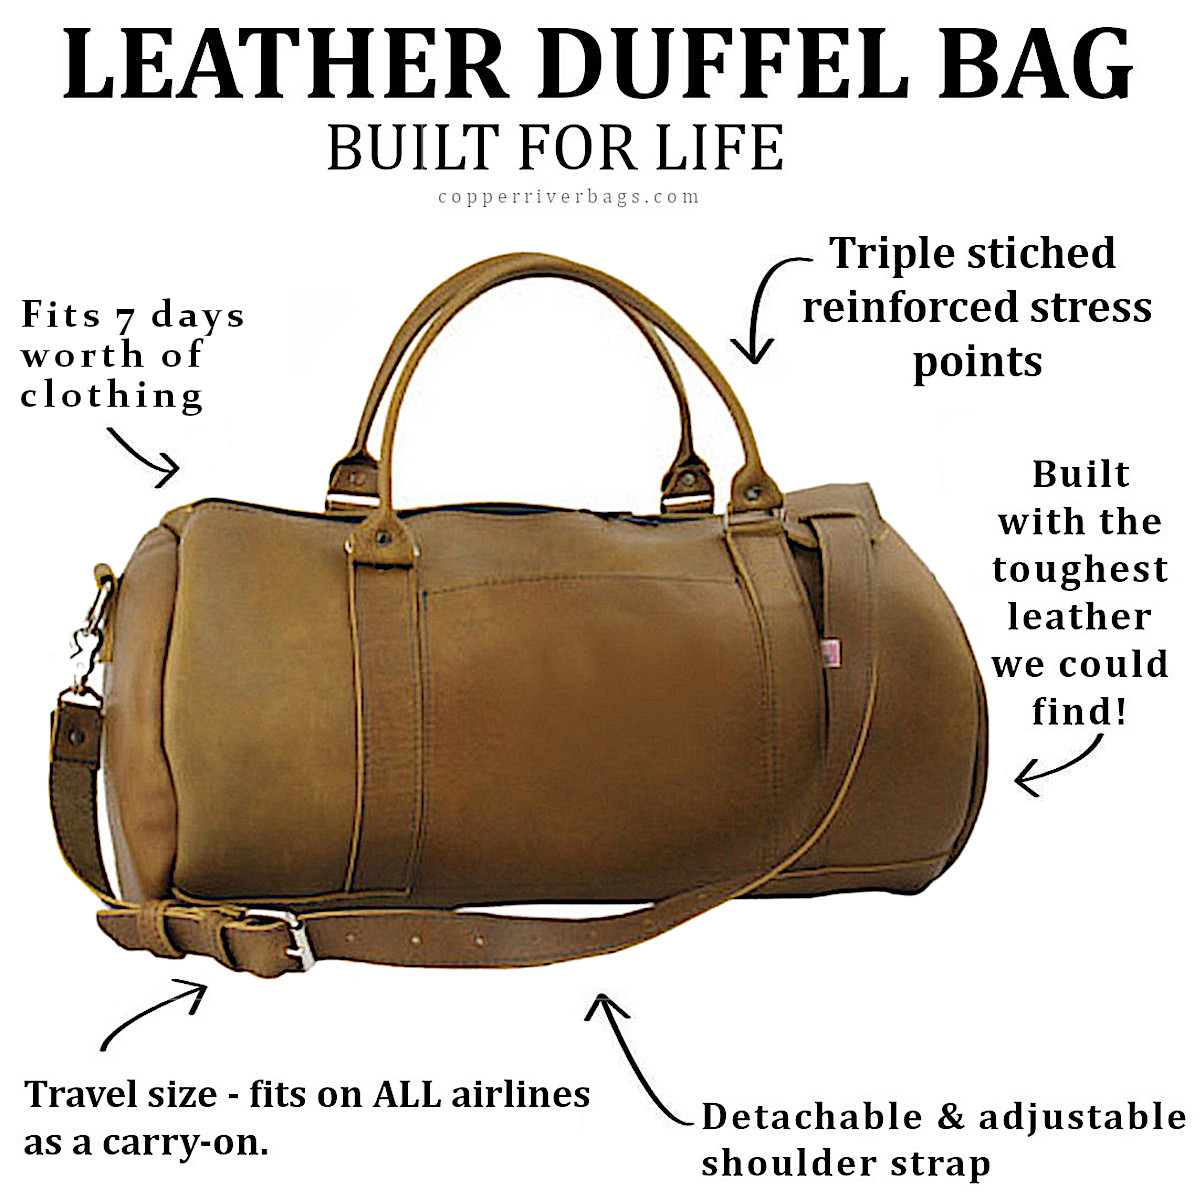 copper-river-duffel-bag-google-disply-ad-logo-1200-x-1200-098976954.jpg